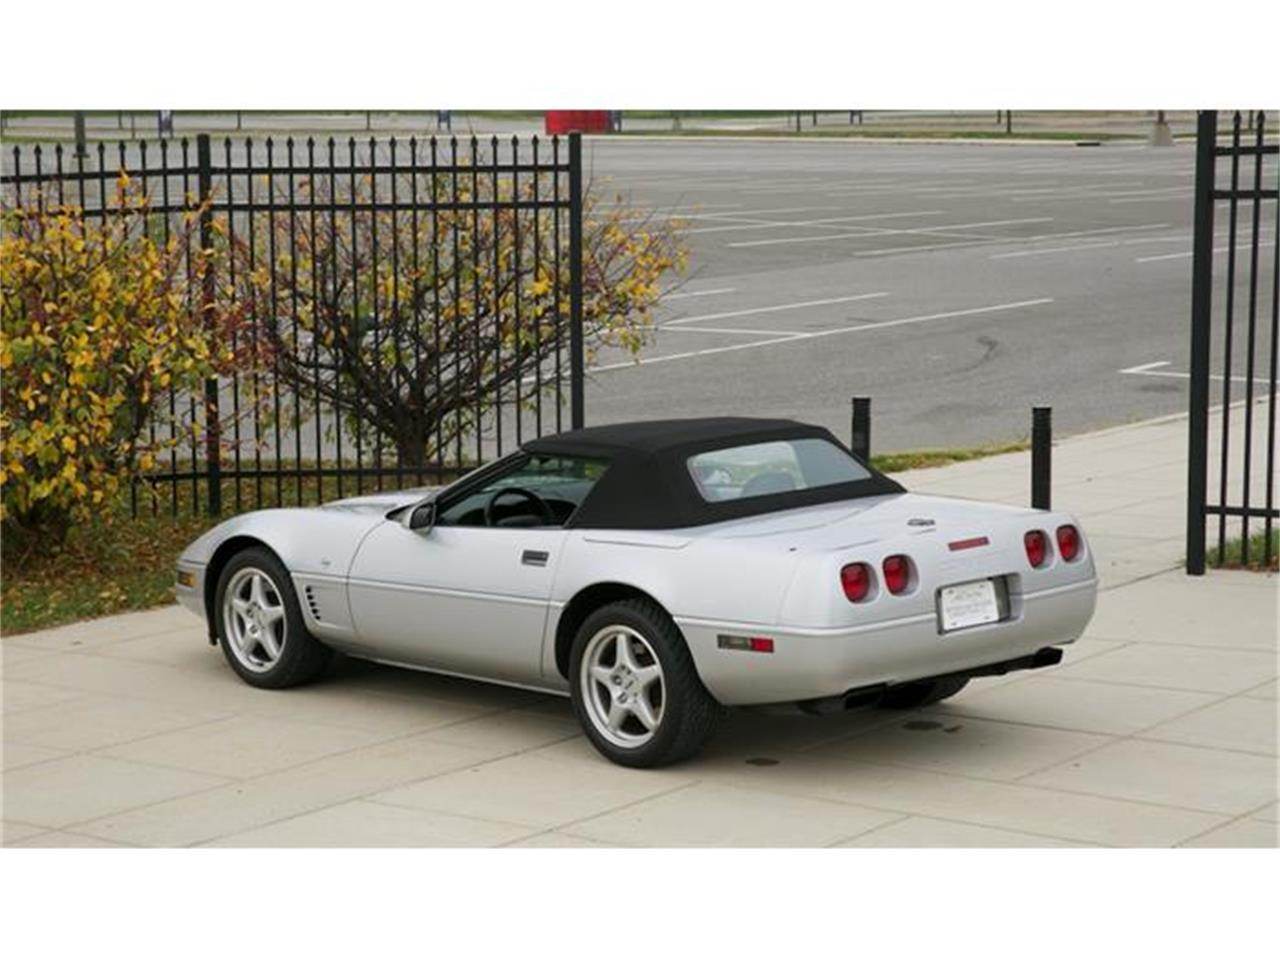 Large Picture of '96 Corvette - $25,900.00 - G17I